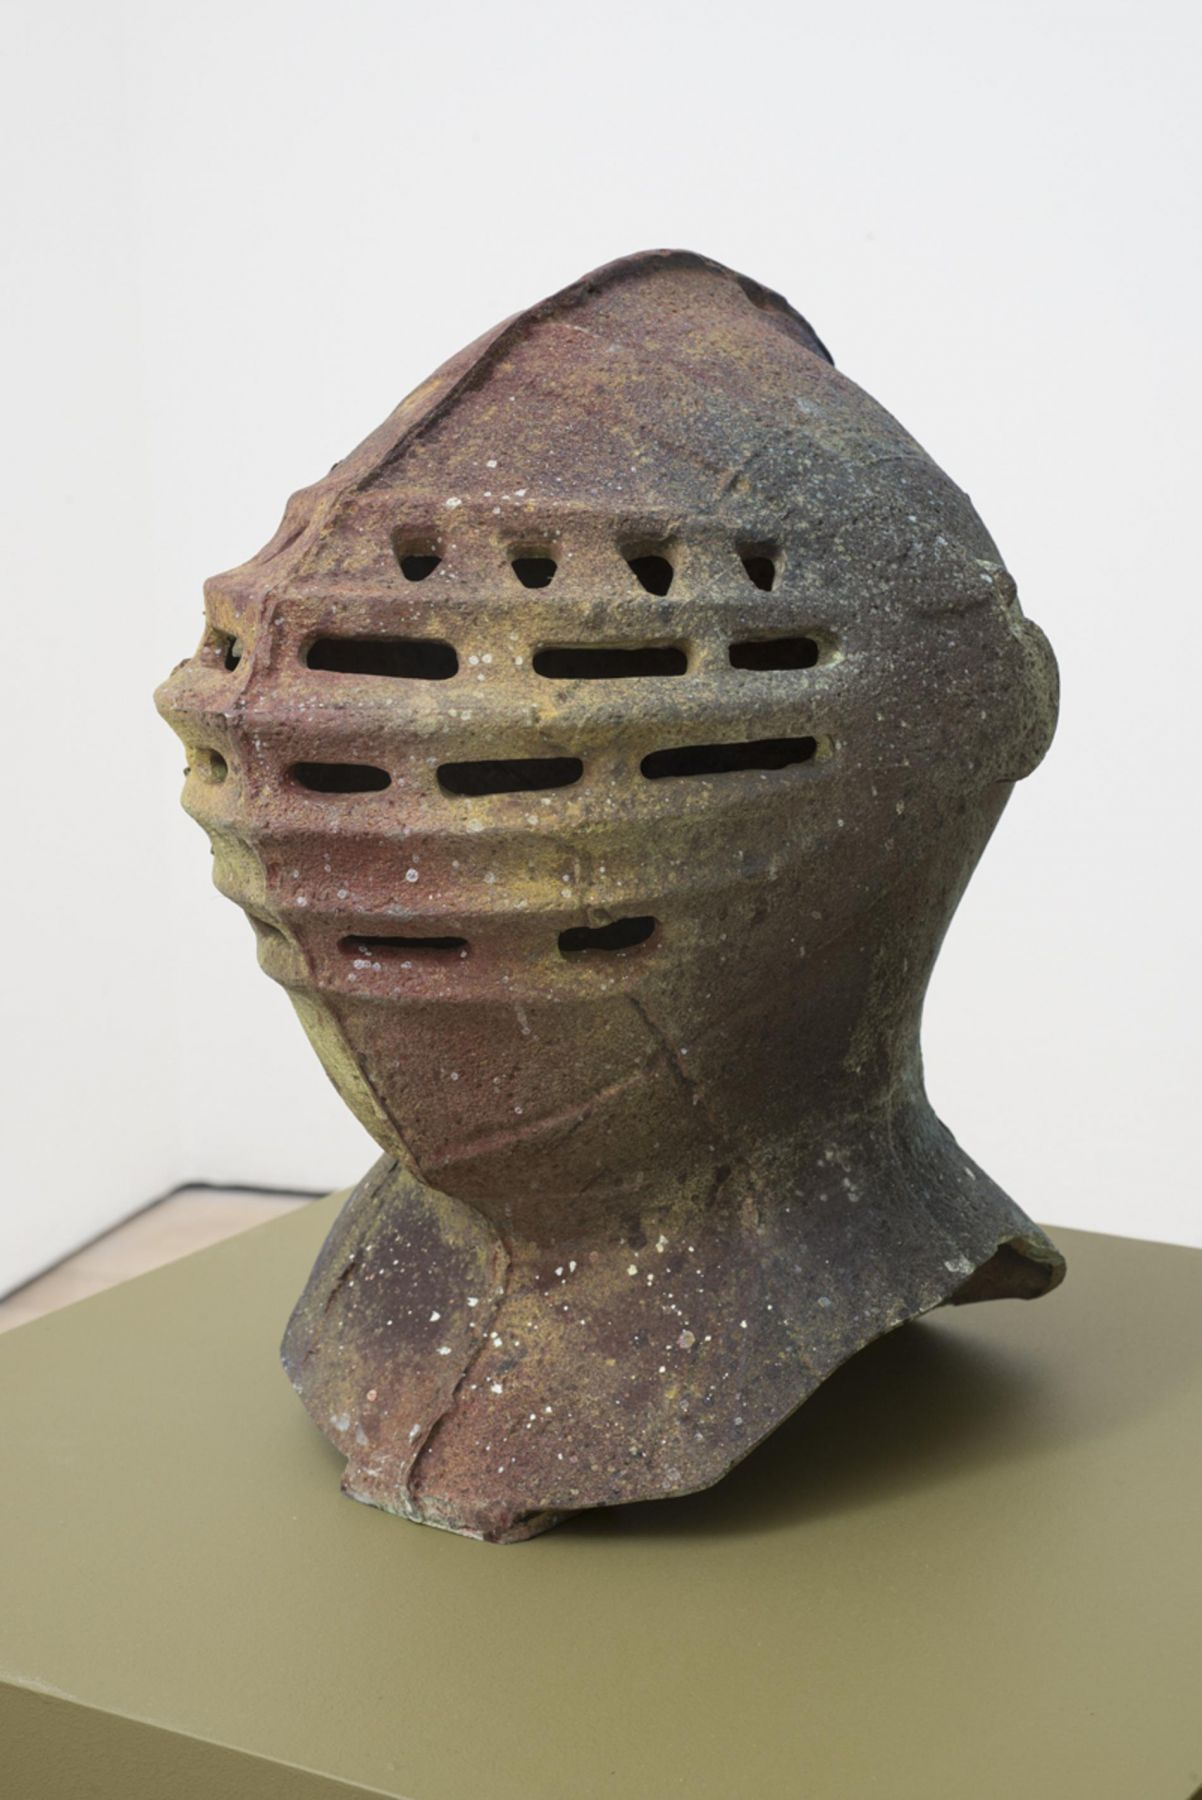 , FOLKERT DE JONG King's Ransom, 2014 Patinated bronze 14 1/2 x 10 1/2 x 12 1/2 in. (36.8 x 26.7 x 31.8 cm) Edition of 3